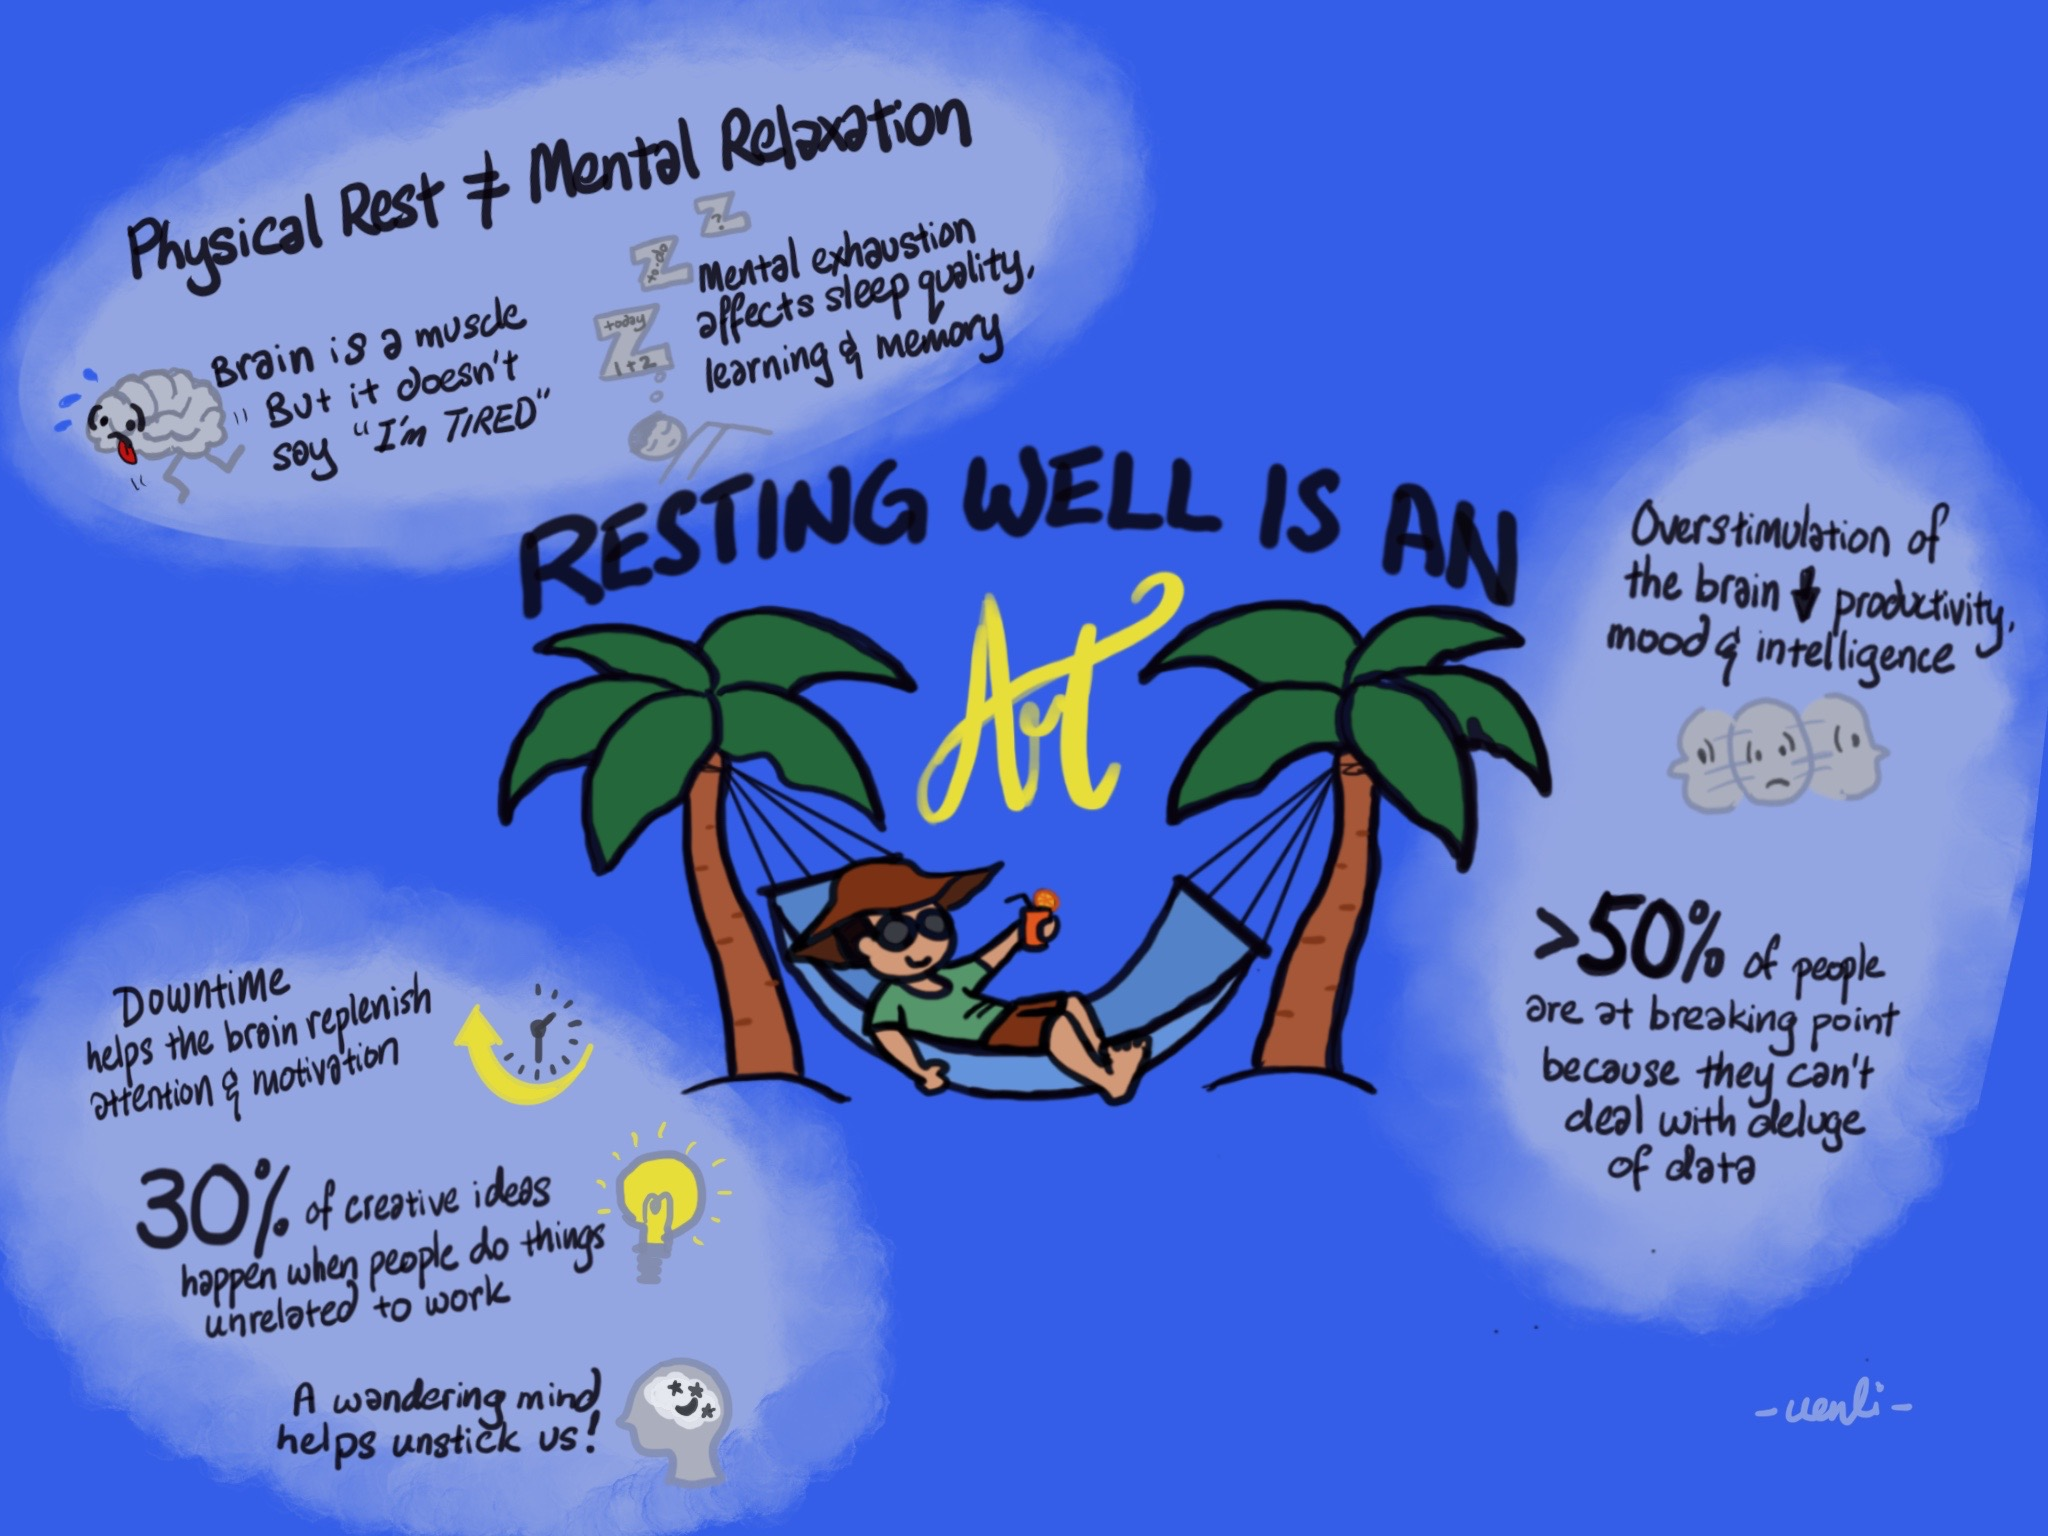 Resting well is an art Image (1/1)